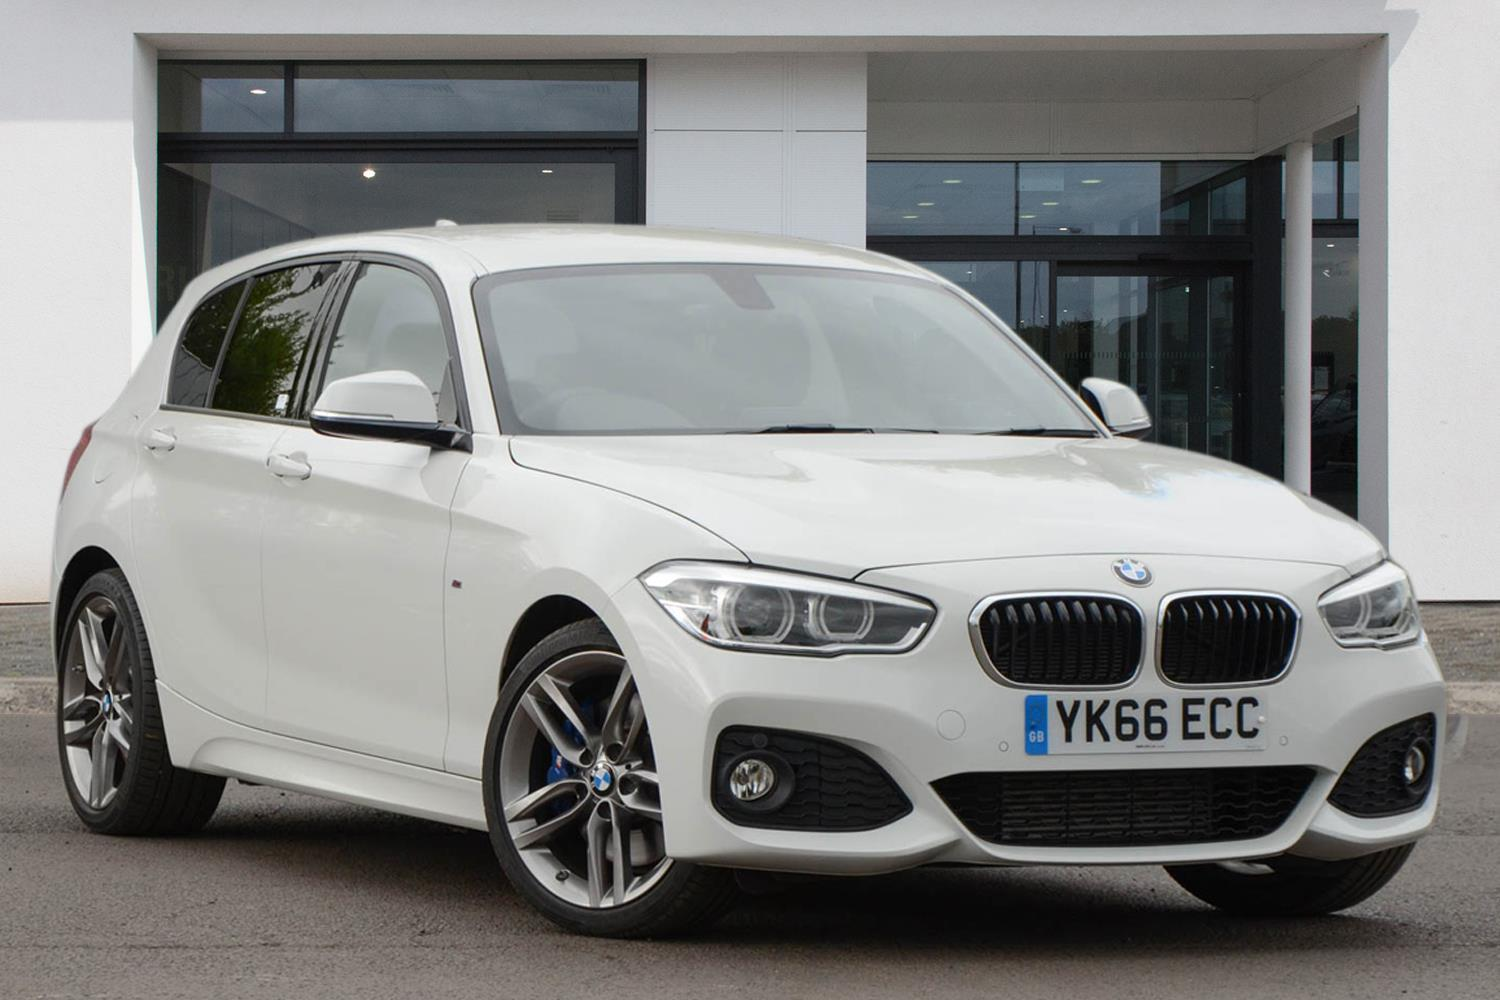 BMW 1 Series 5-door Sports Hatch YK66ECC - Image 3